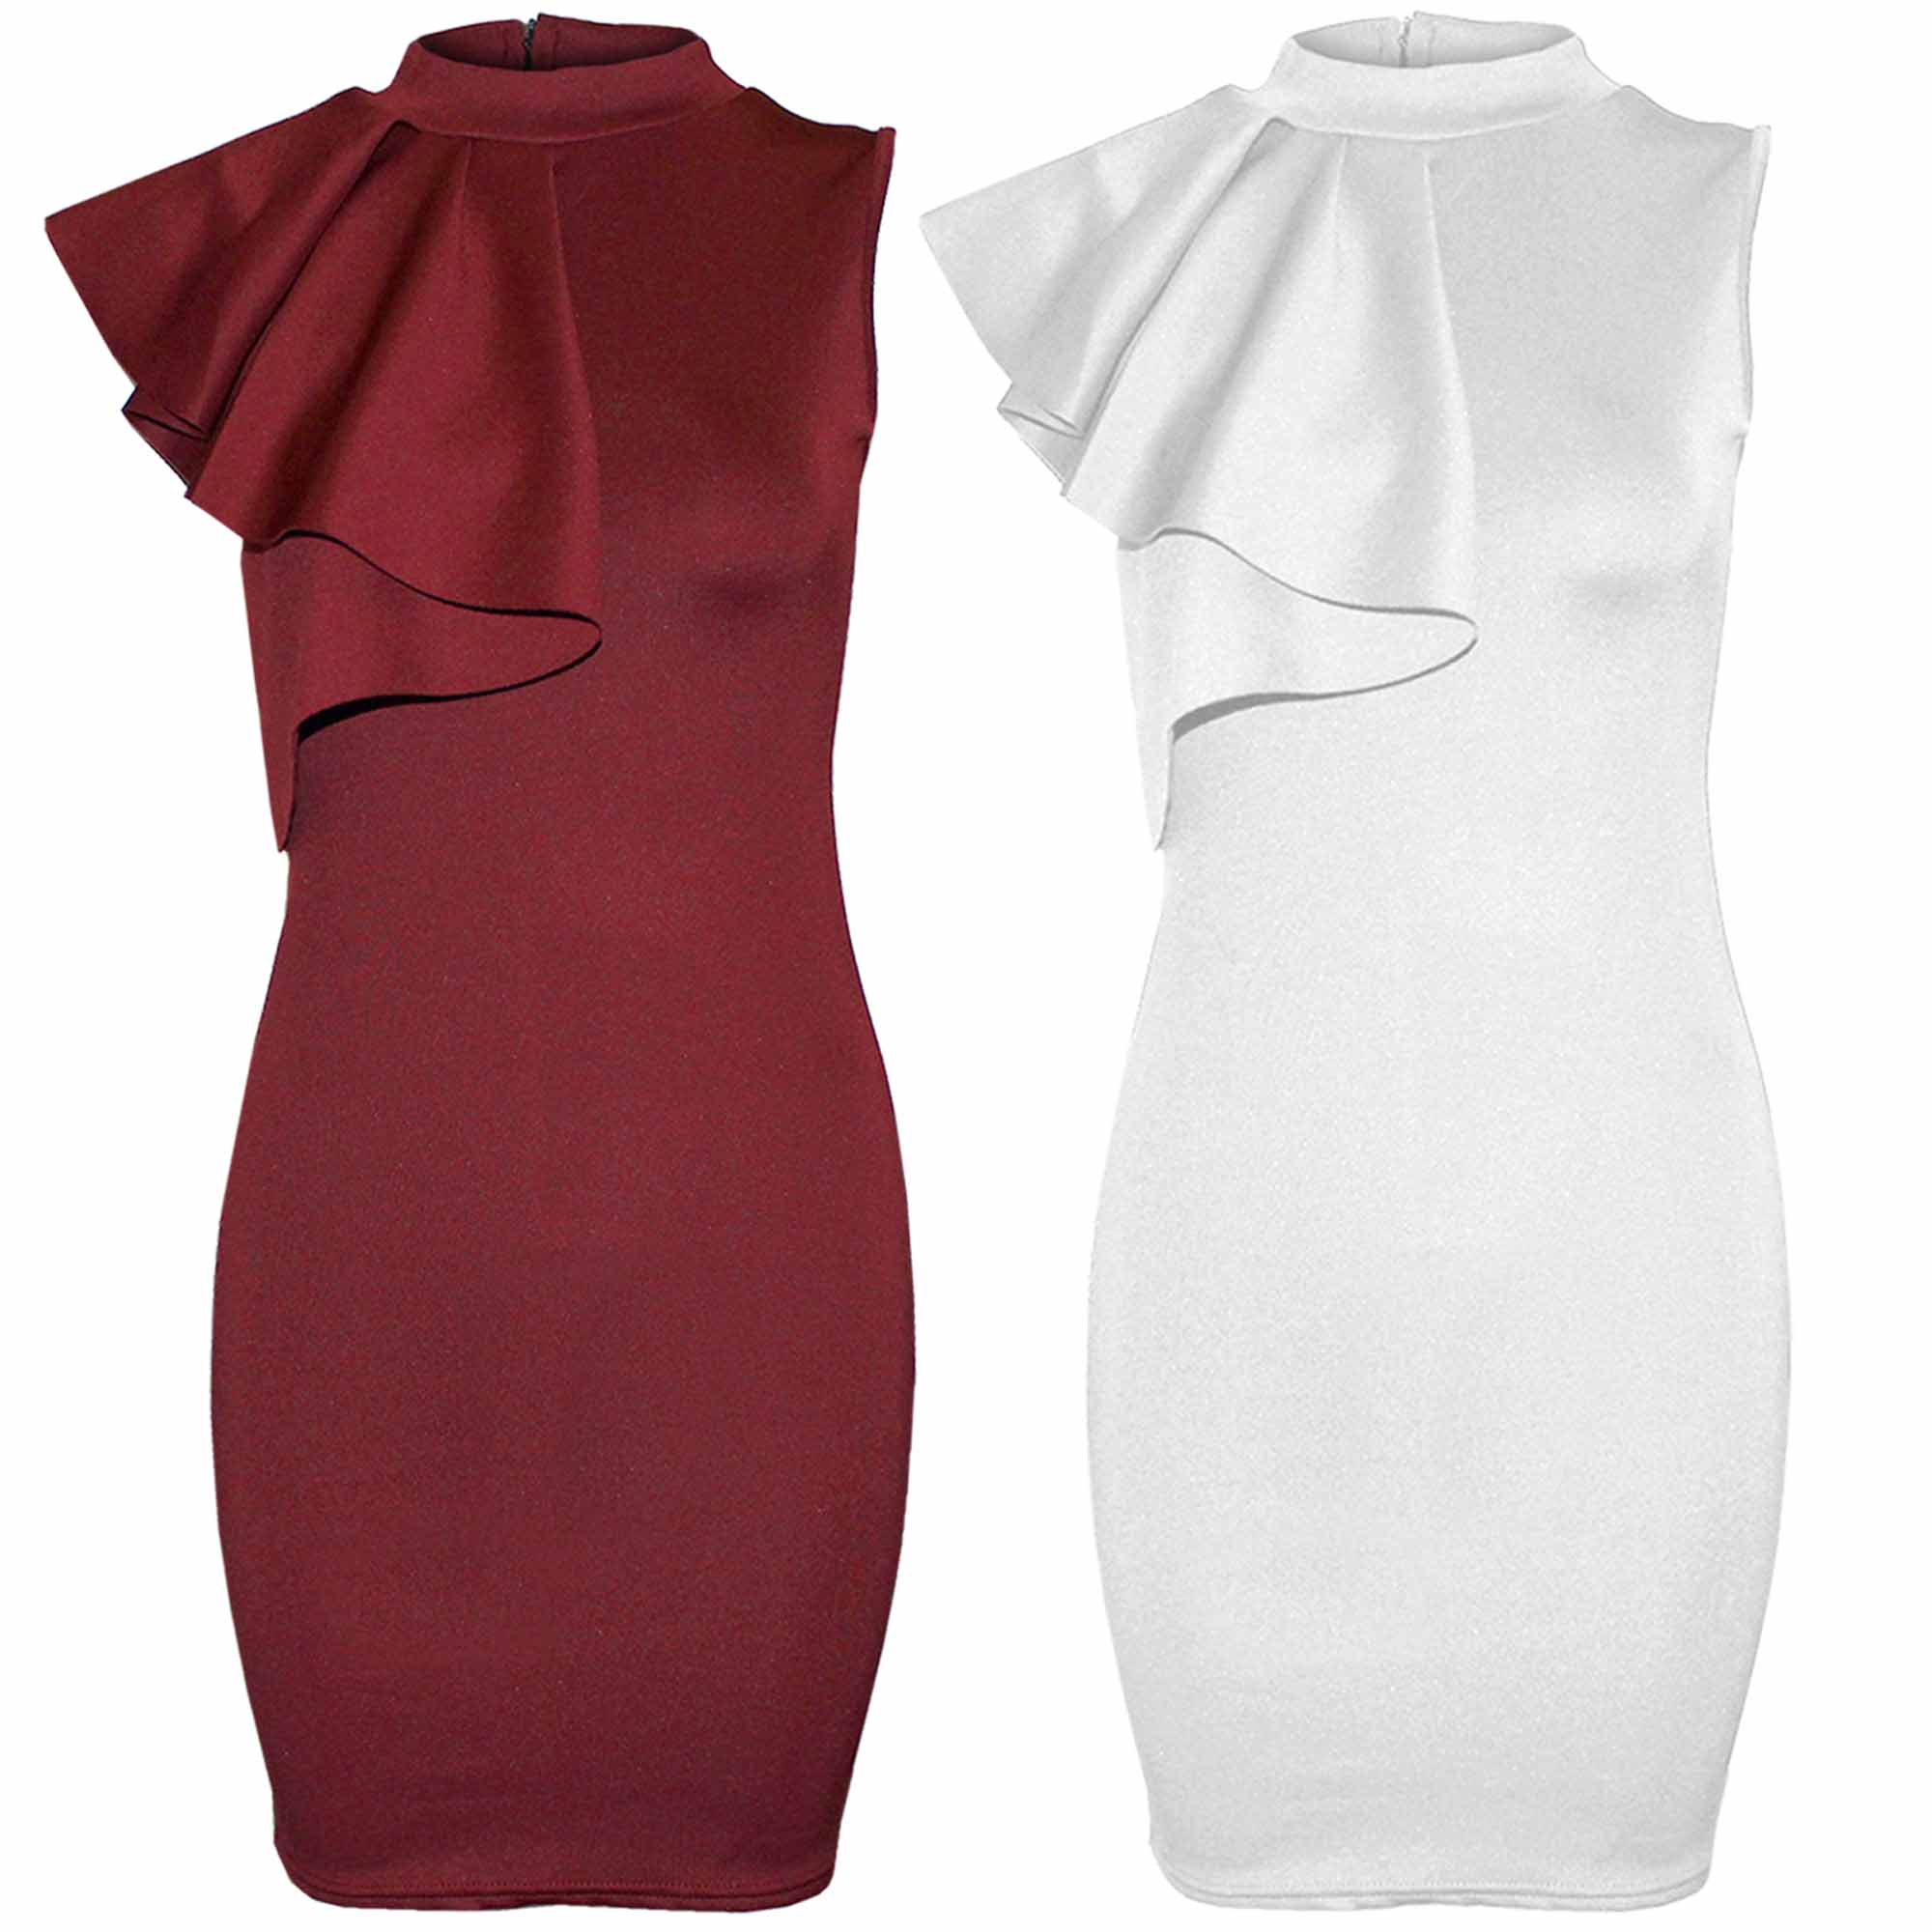 WOMEN LADIES SHOULDER FRILL BODYCON DRESS SLEEVELESS ZIP TOP PENCIL SKIRT POLO | eBay